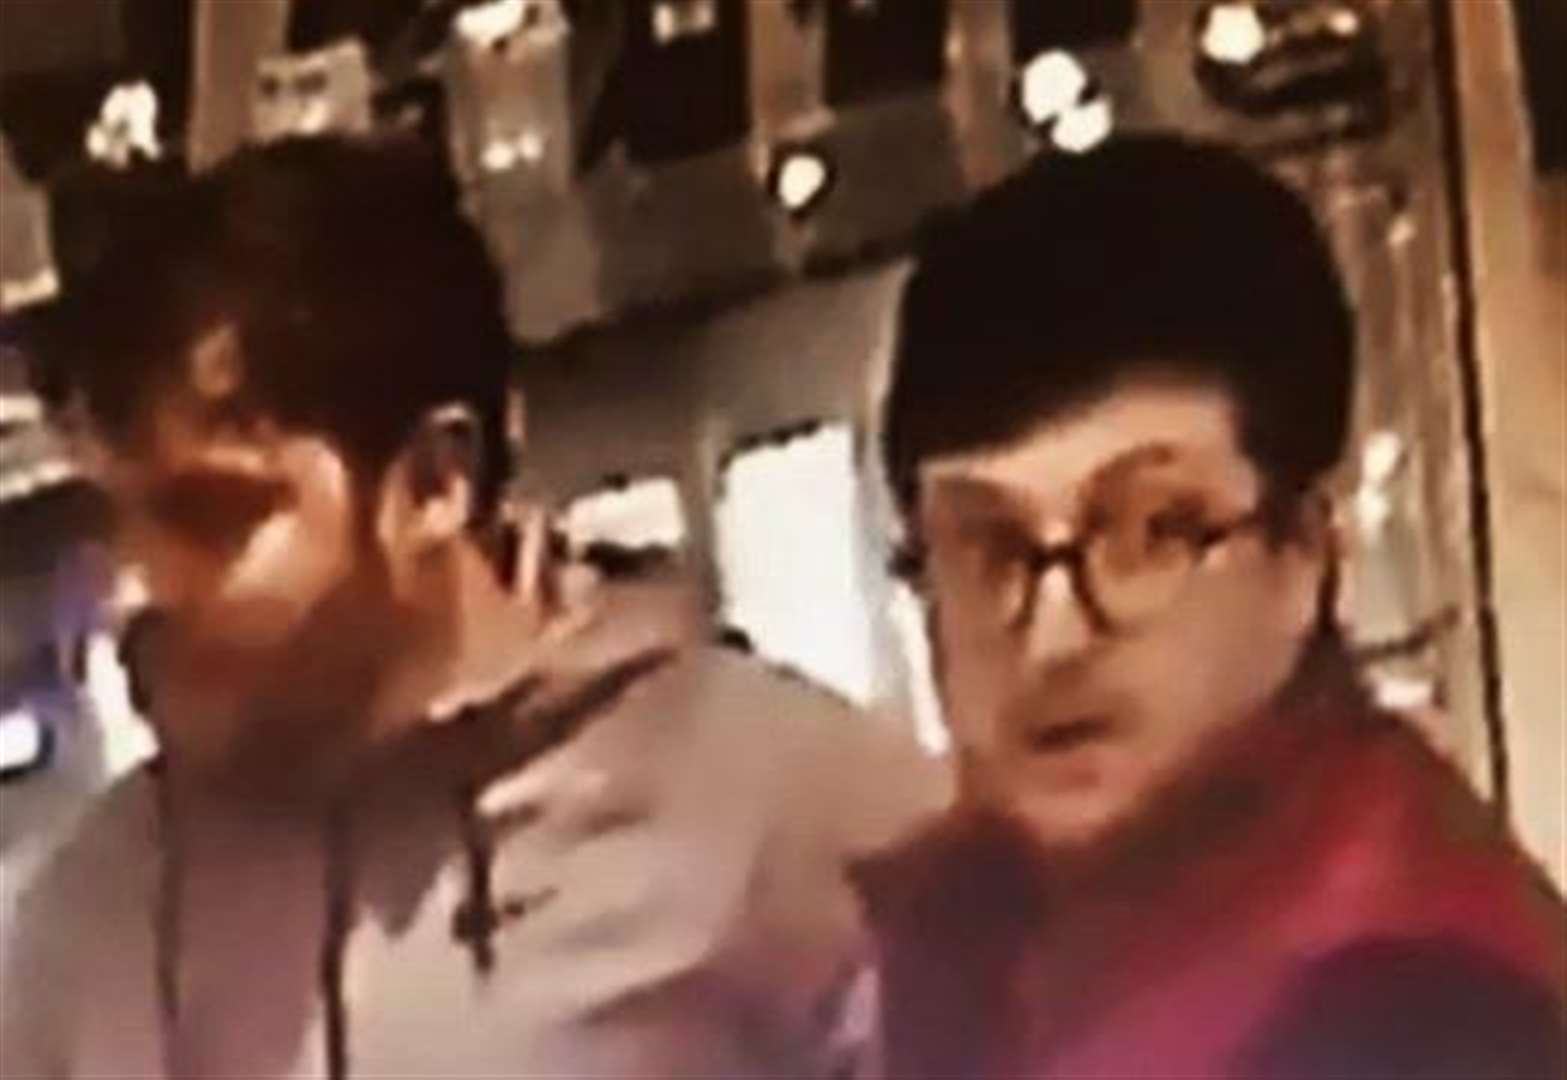 Police issue CCTV pictures of two men after thefts in Cambridge